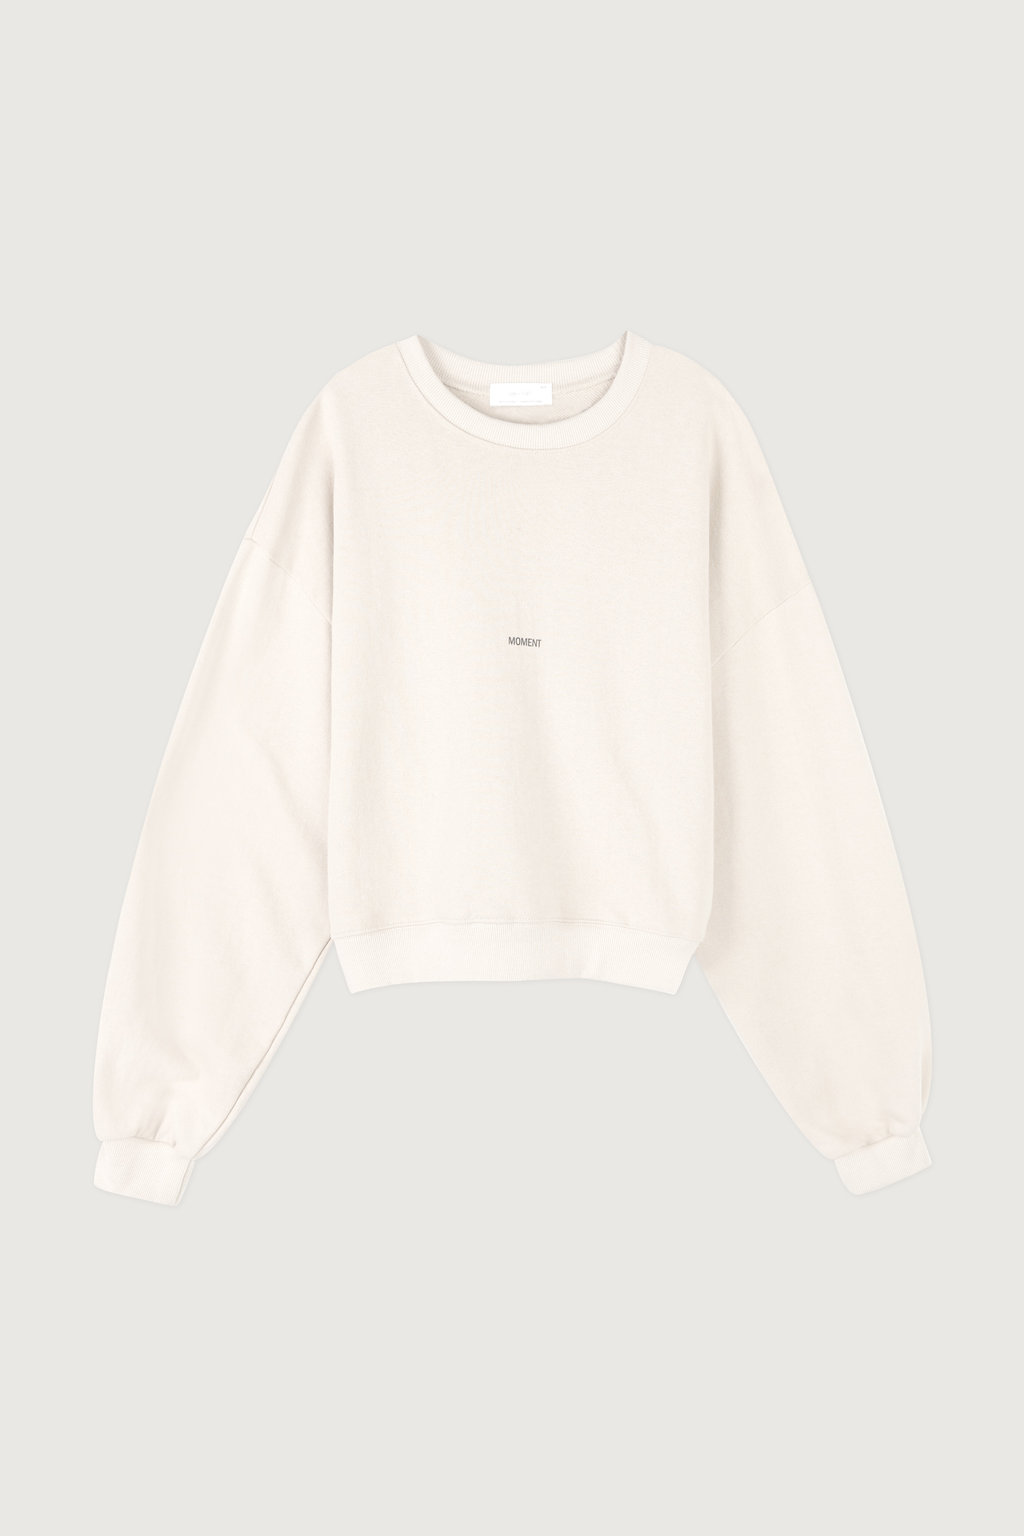 Sweatshirt K006 Cream 7